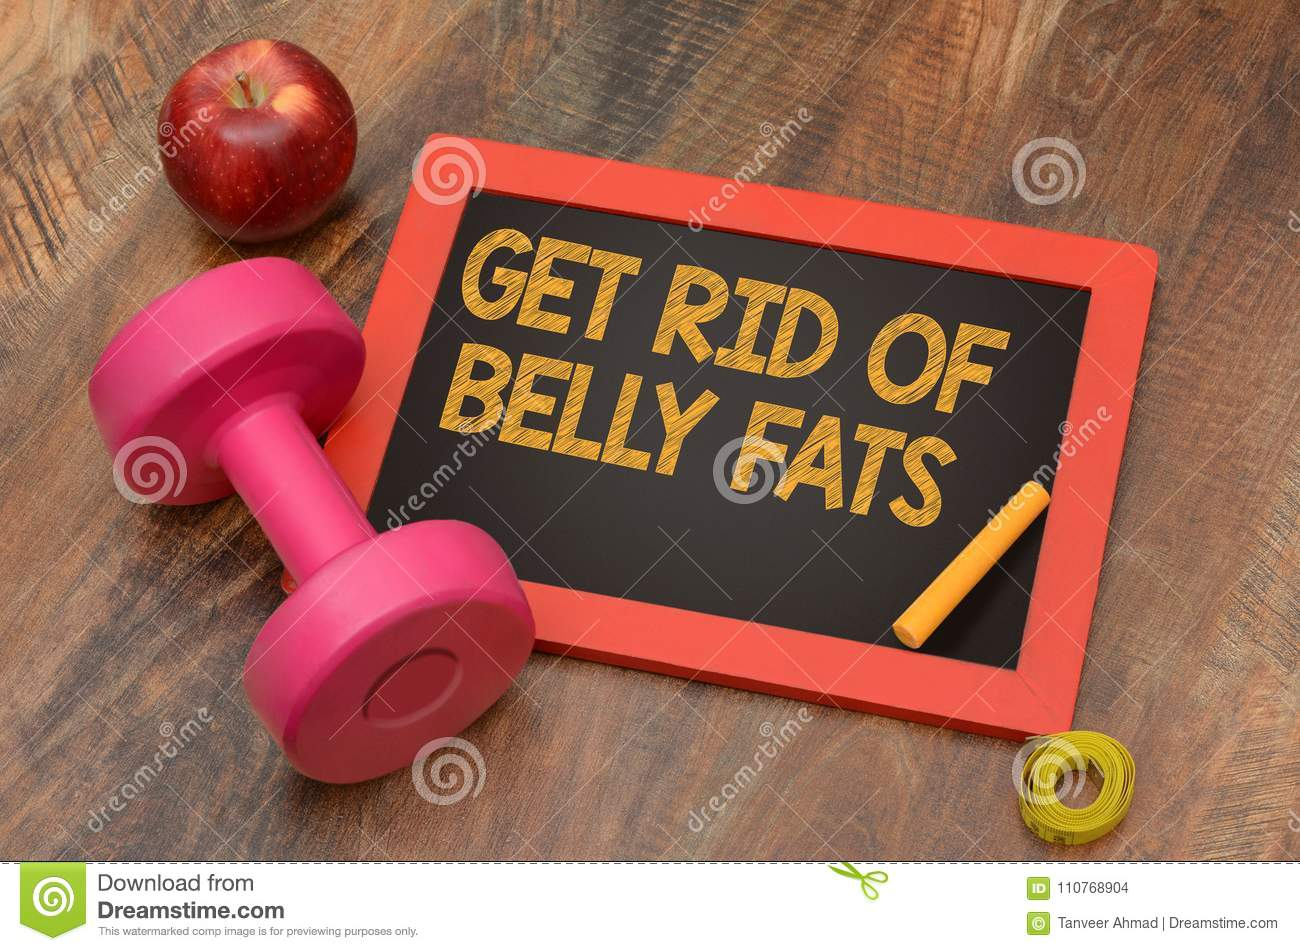 Get rid of Belly fats fitness concept with dumbbell and apple